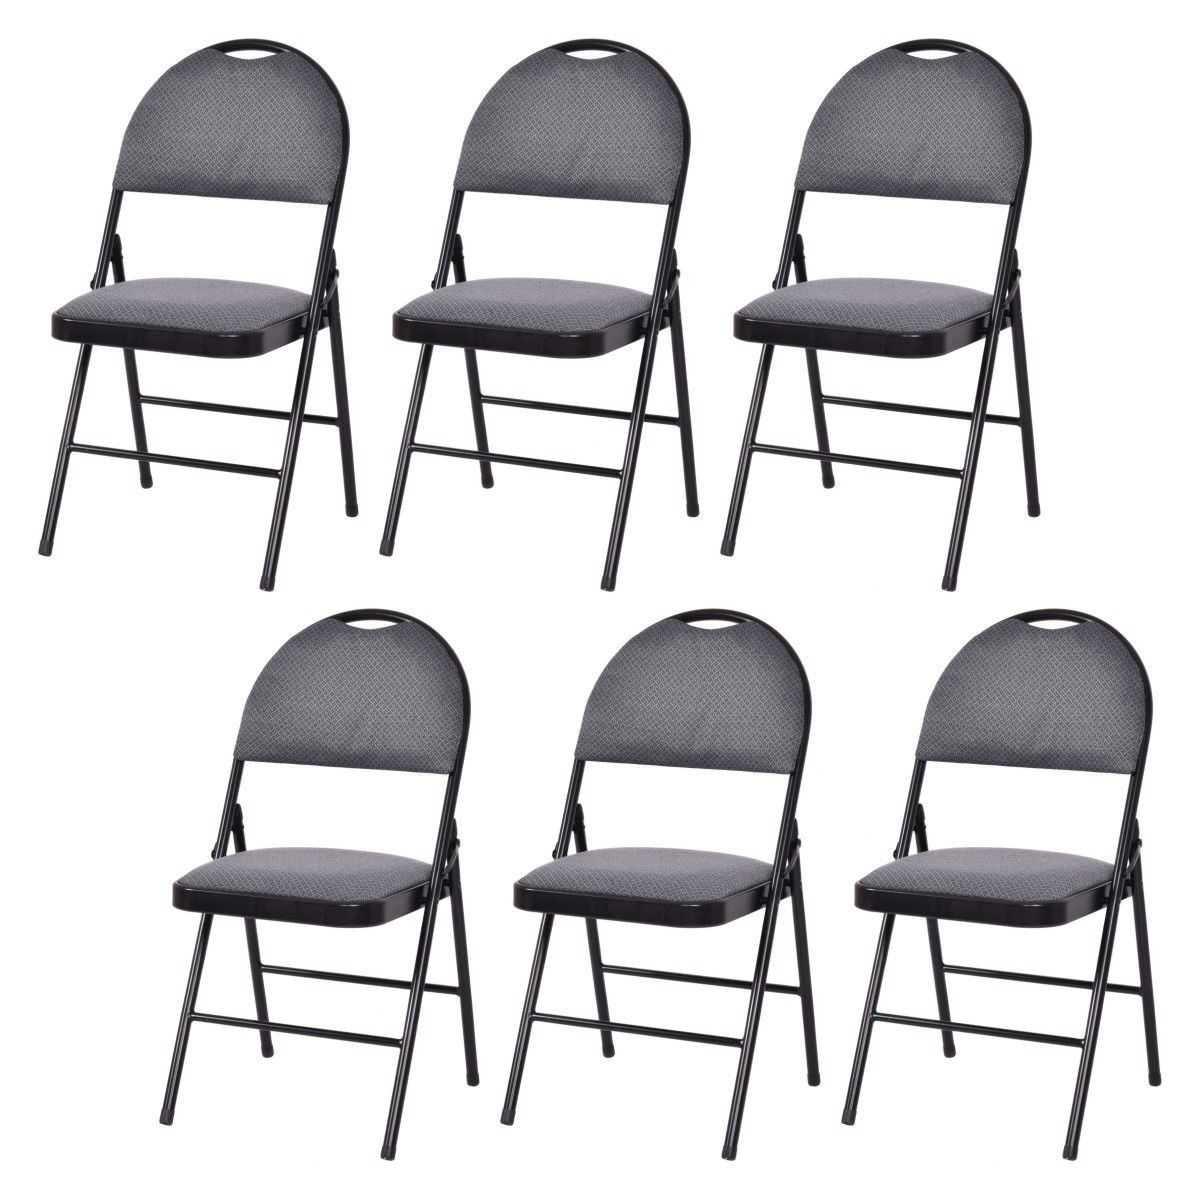 Metal Padded Folding Chairs padded folding chairs